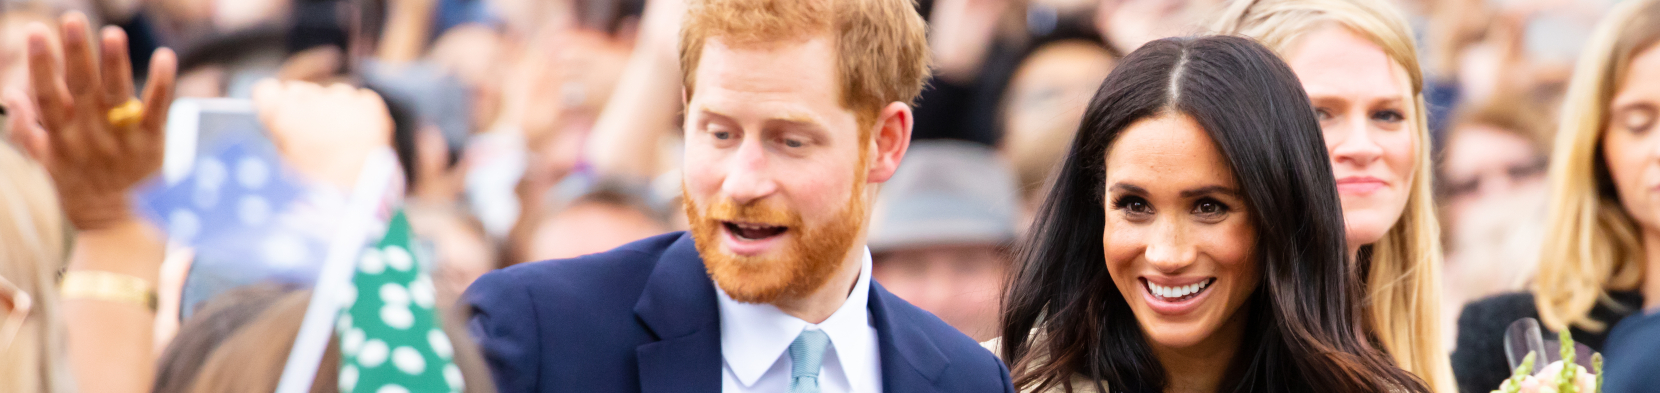 Harry and Meghan amidst a crowd